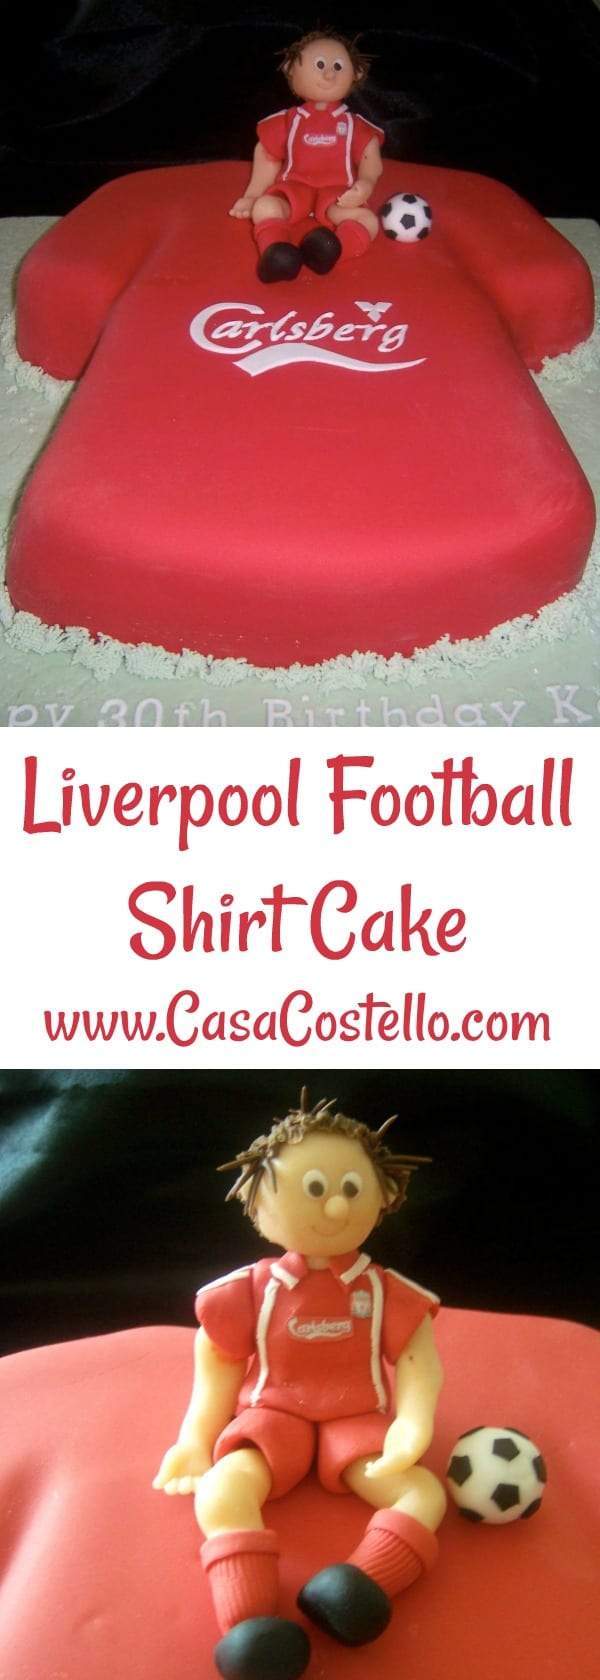 Liverpool Football Club Shirt Novelty Cake with Sugar Cake Topper Player